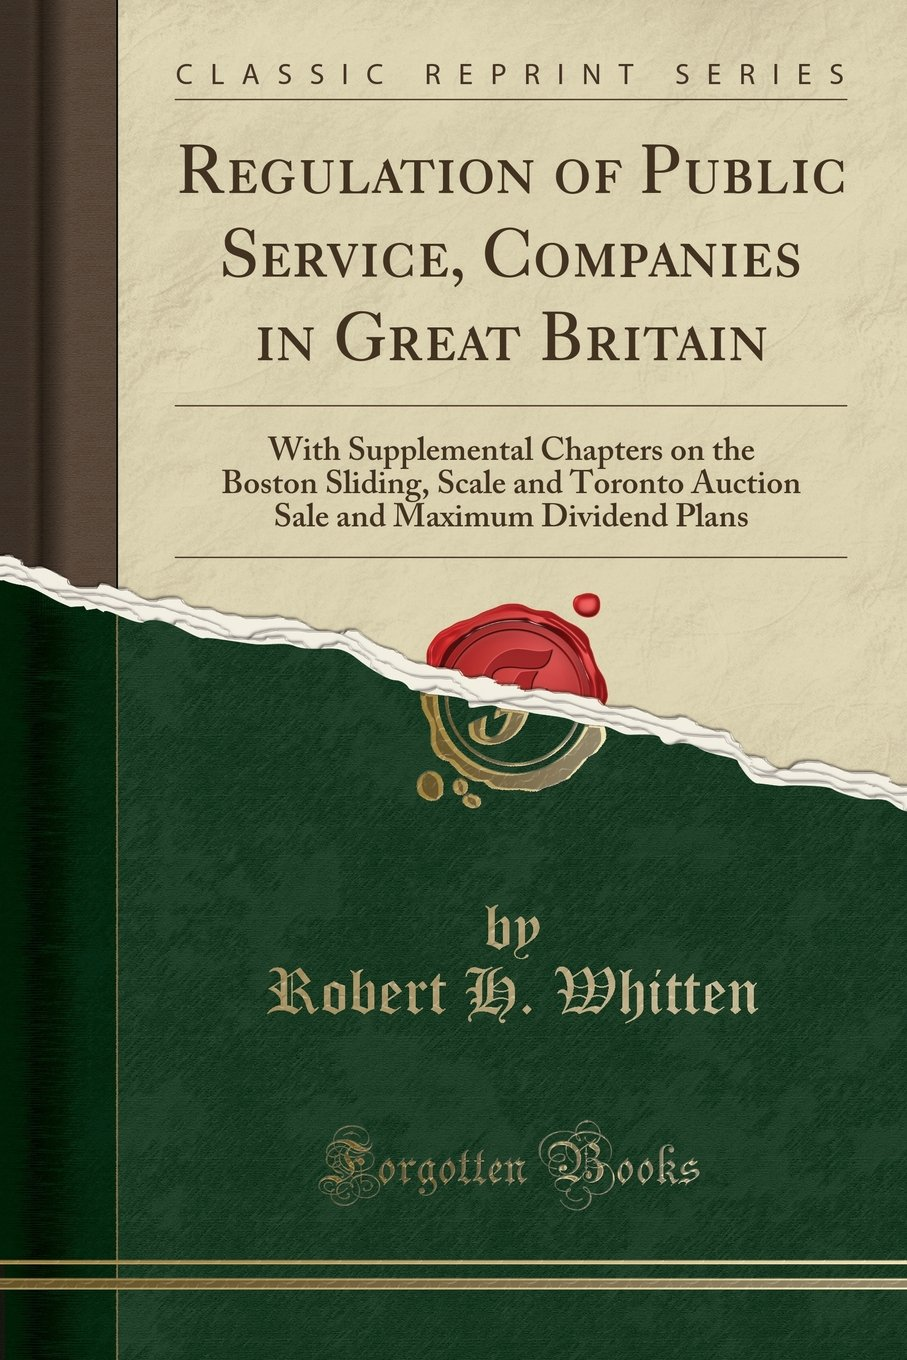 Download Regulation of Public Service, Companies in Great Britain: With Supplemental Chapters on the Boston Sliding, Scale and Toronto Auction Sale and Maximum Dividend Plans (Classic Reprint) ebook